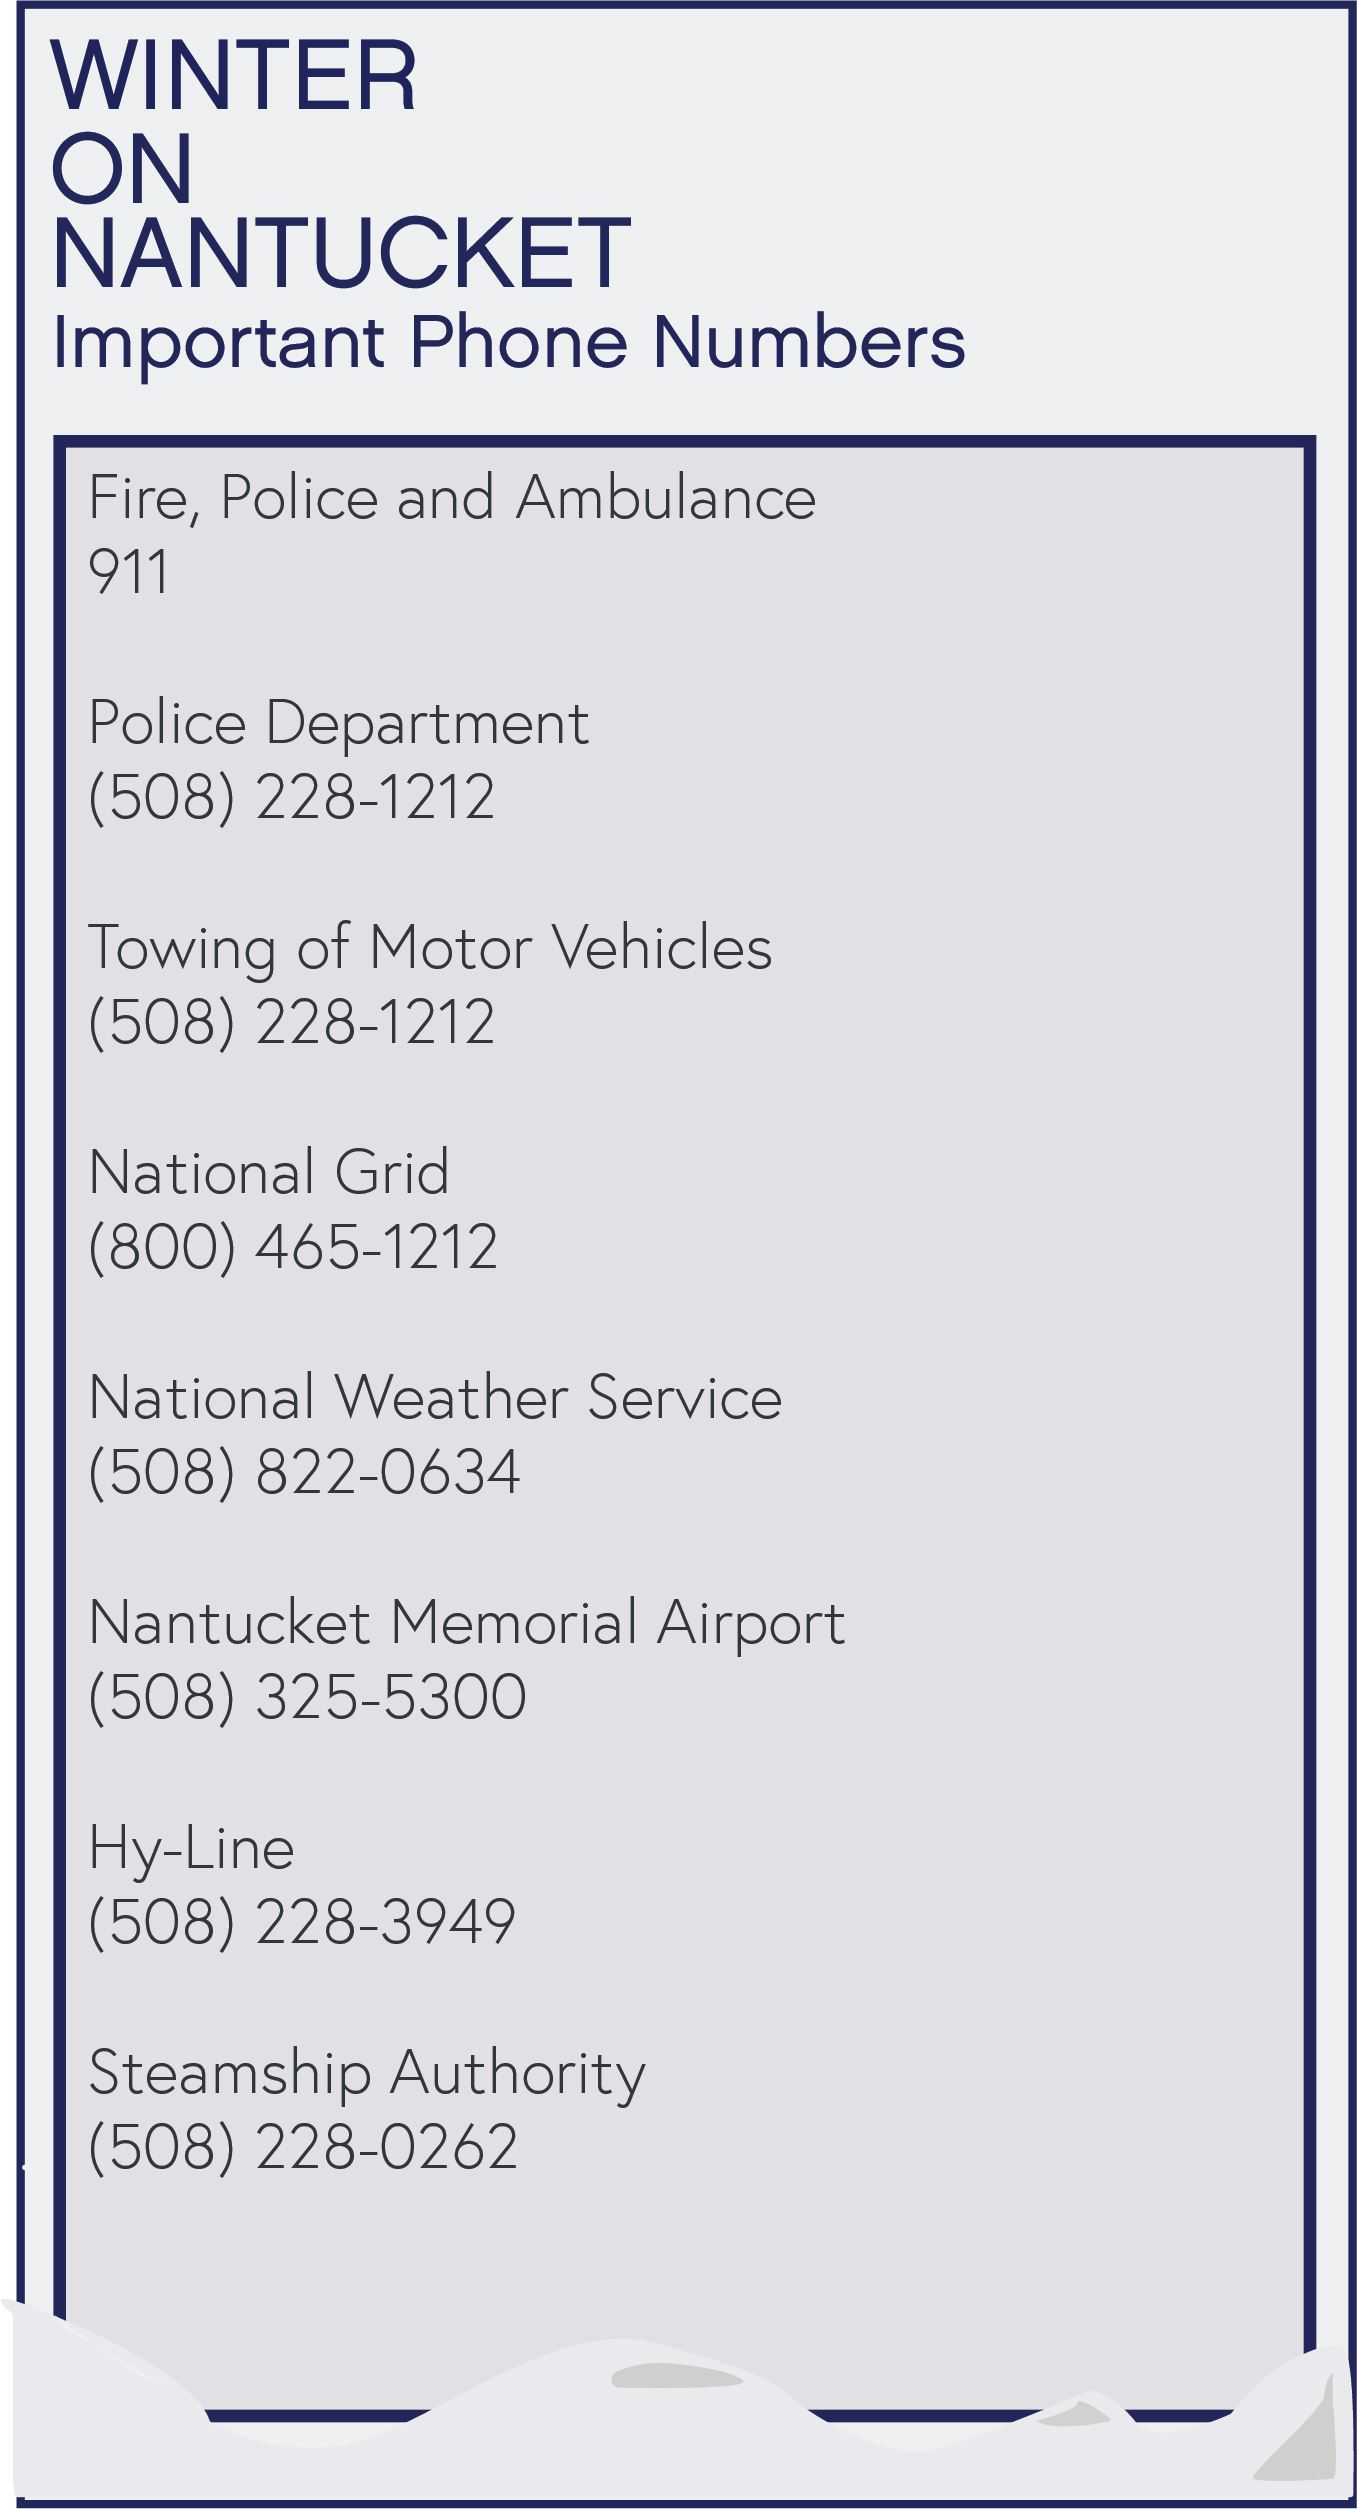 Nantucket Winter Important Phone Numbers